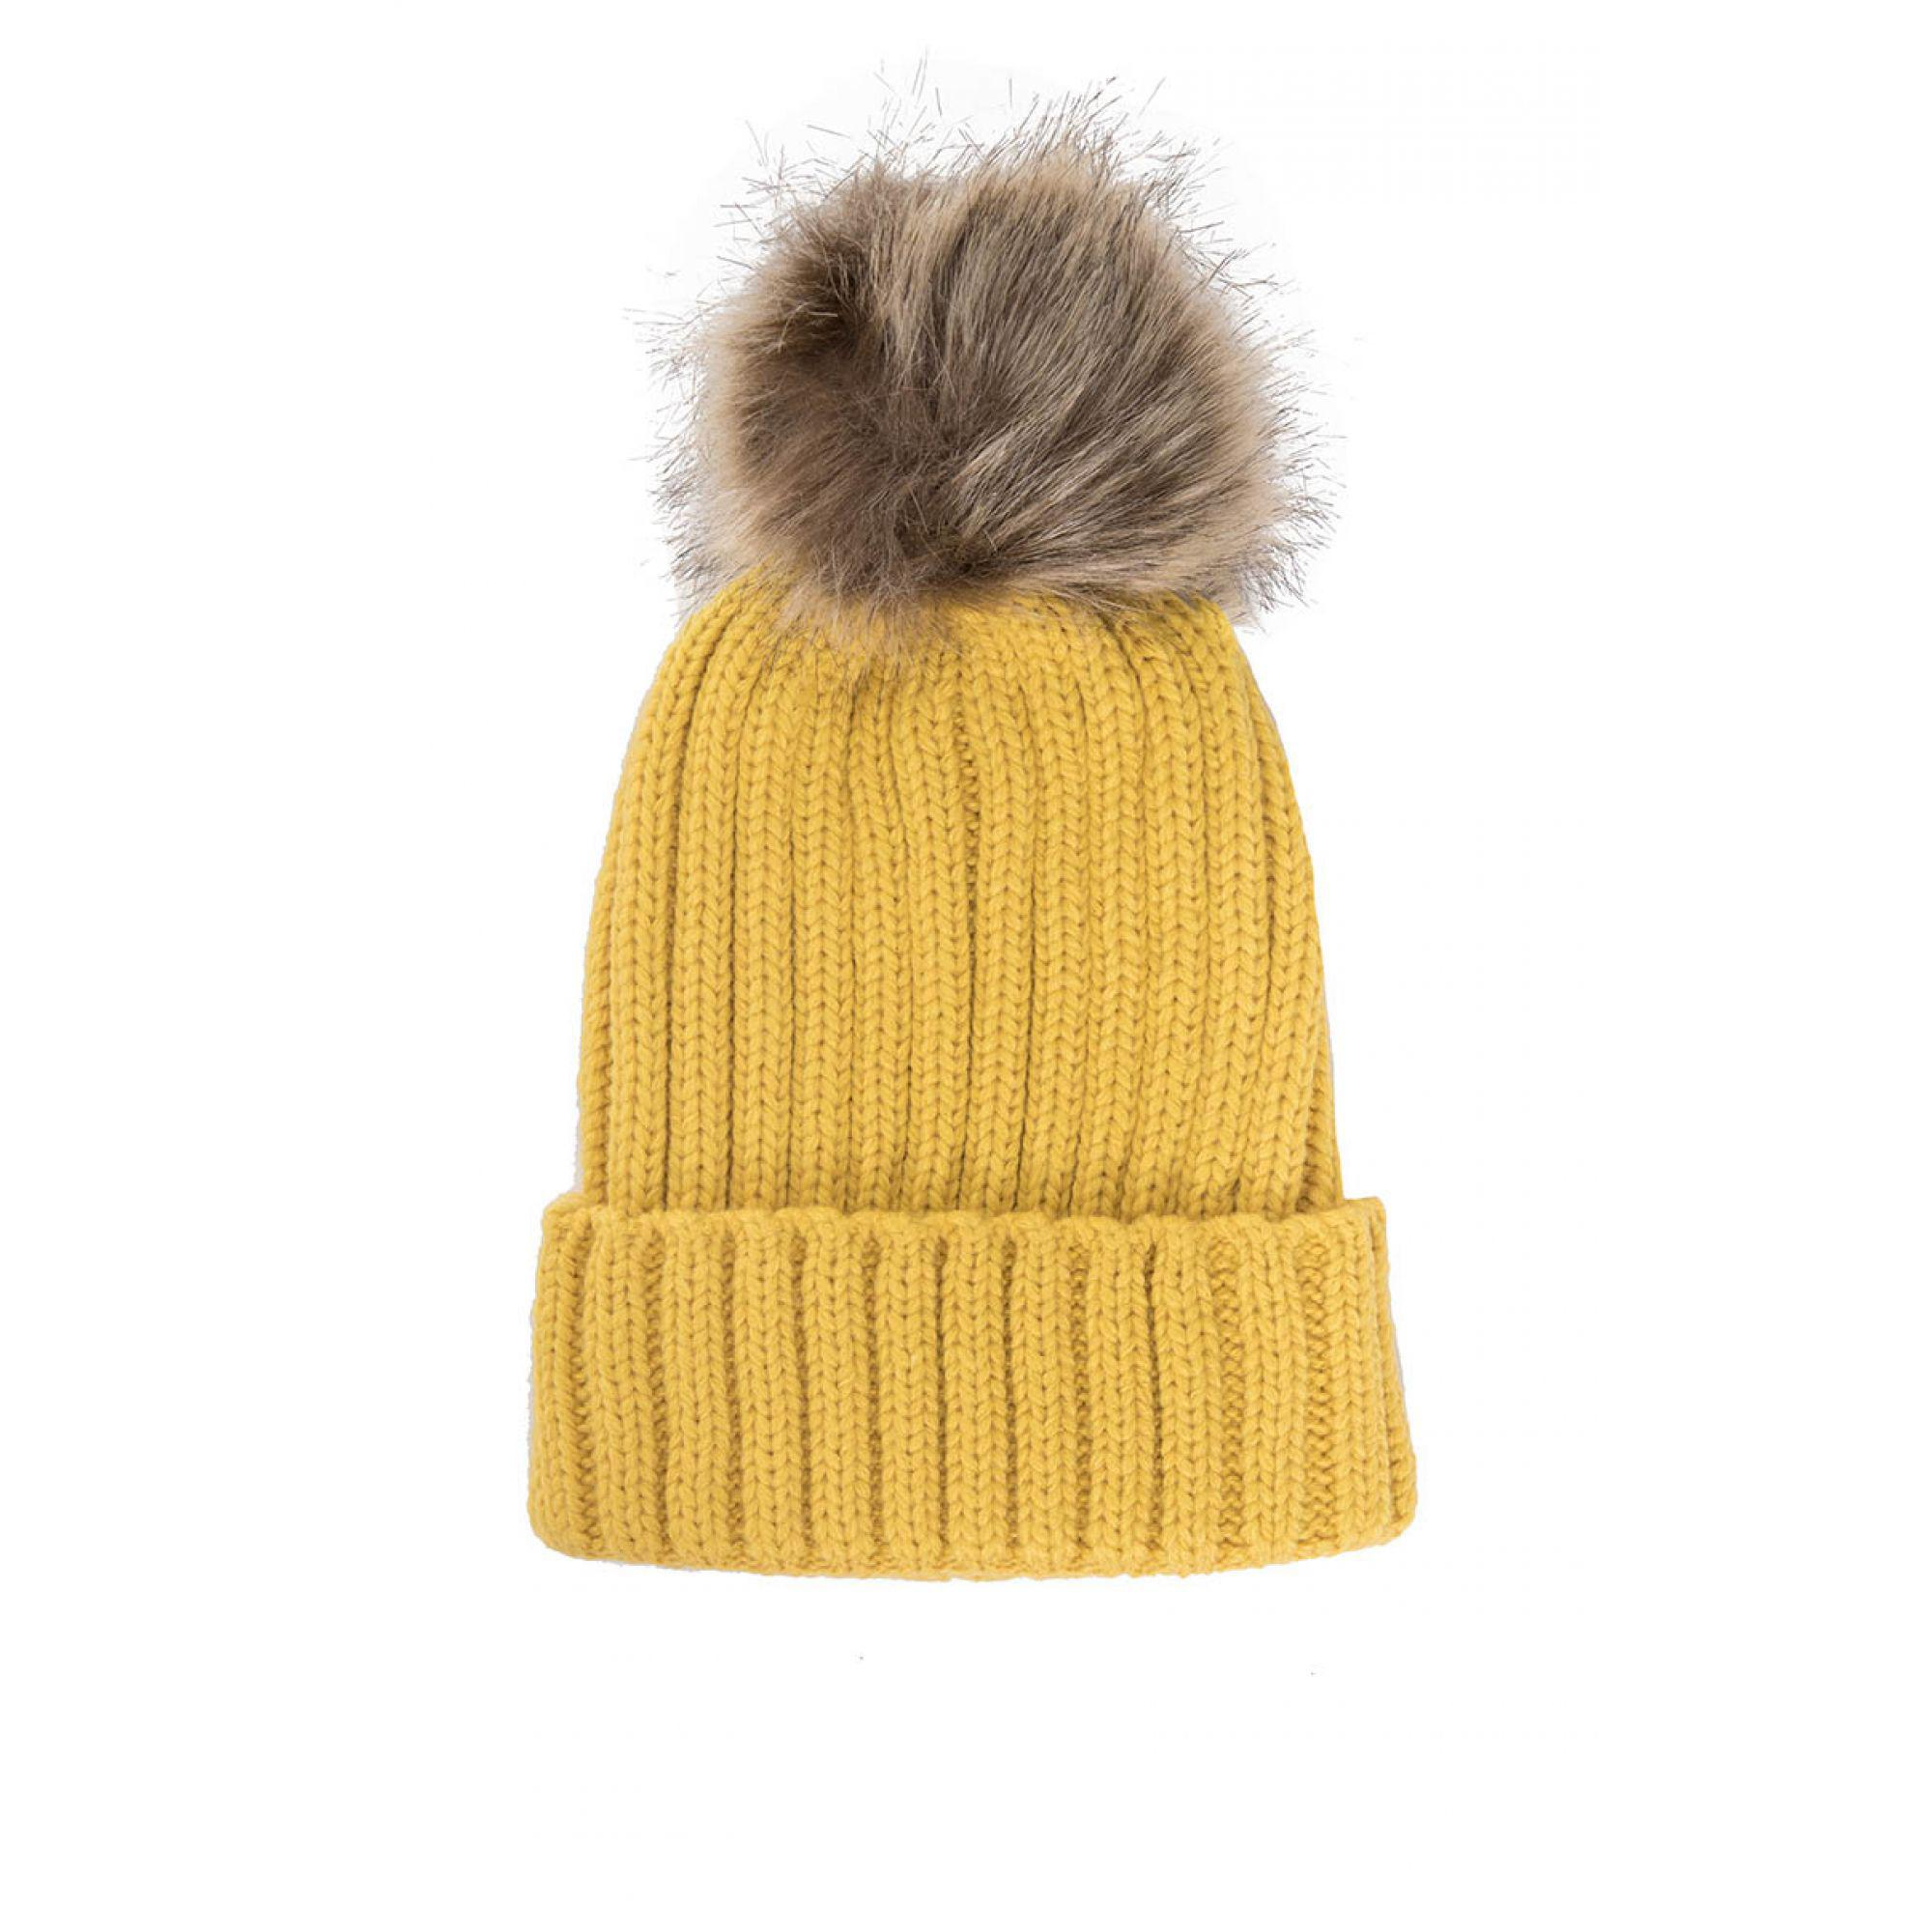 Quiz Mustard Knitted Contrast Pom Pom Hat in Yellow - Lyst d321326703a